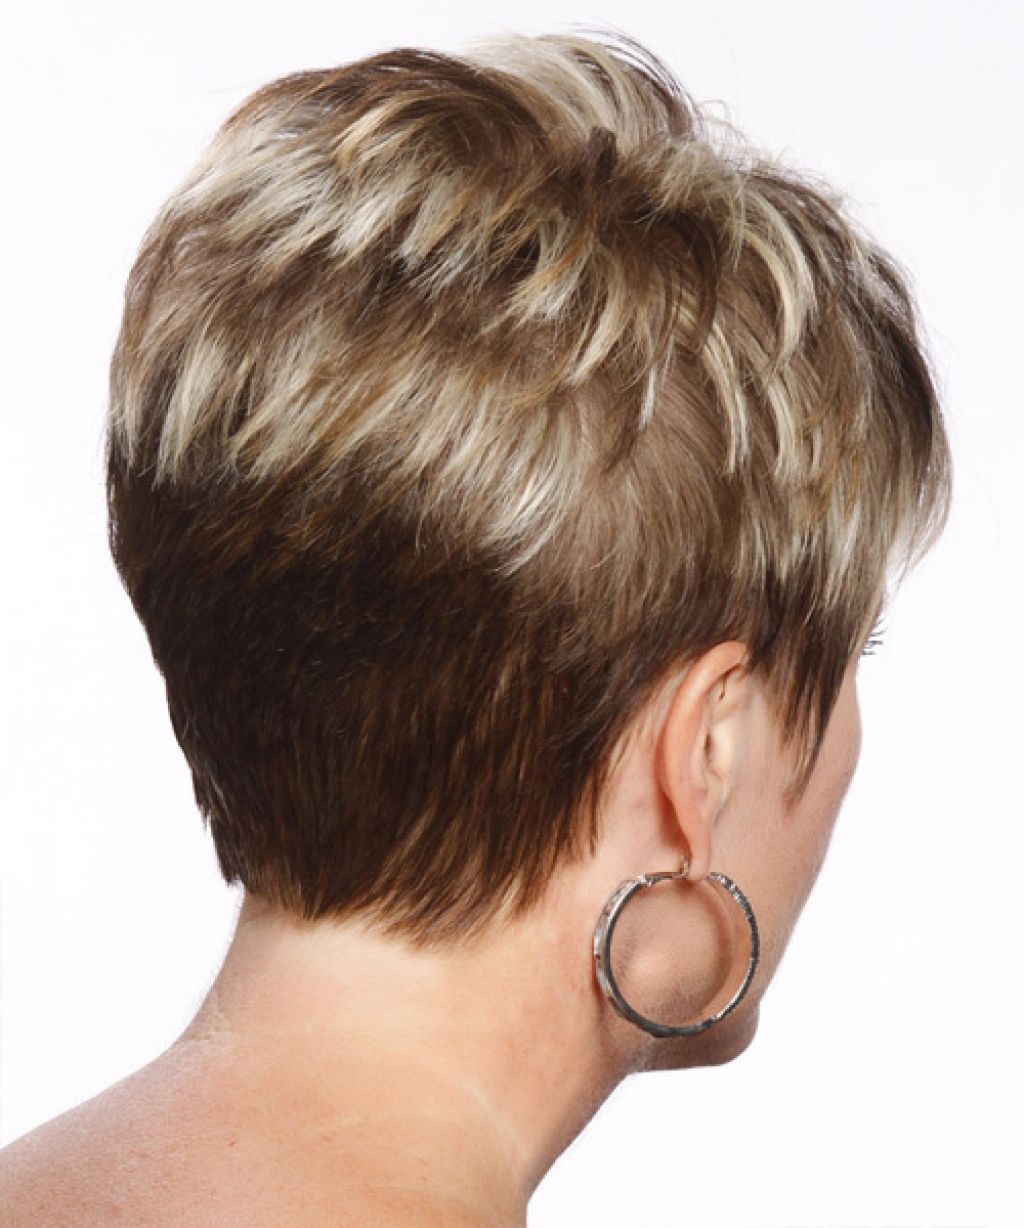 Back View Short Haircuts 3